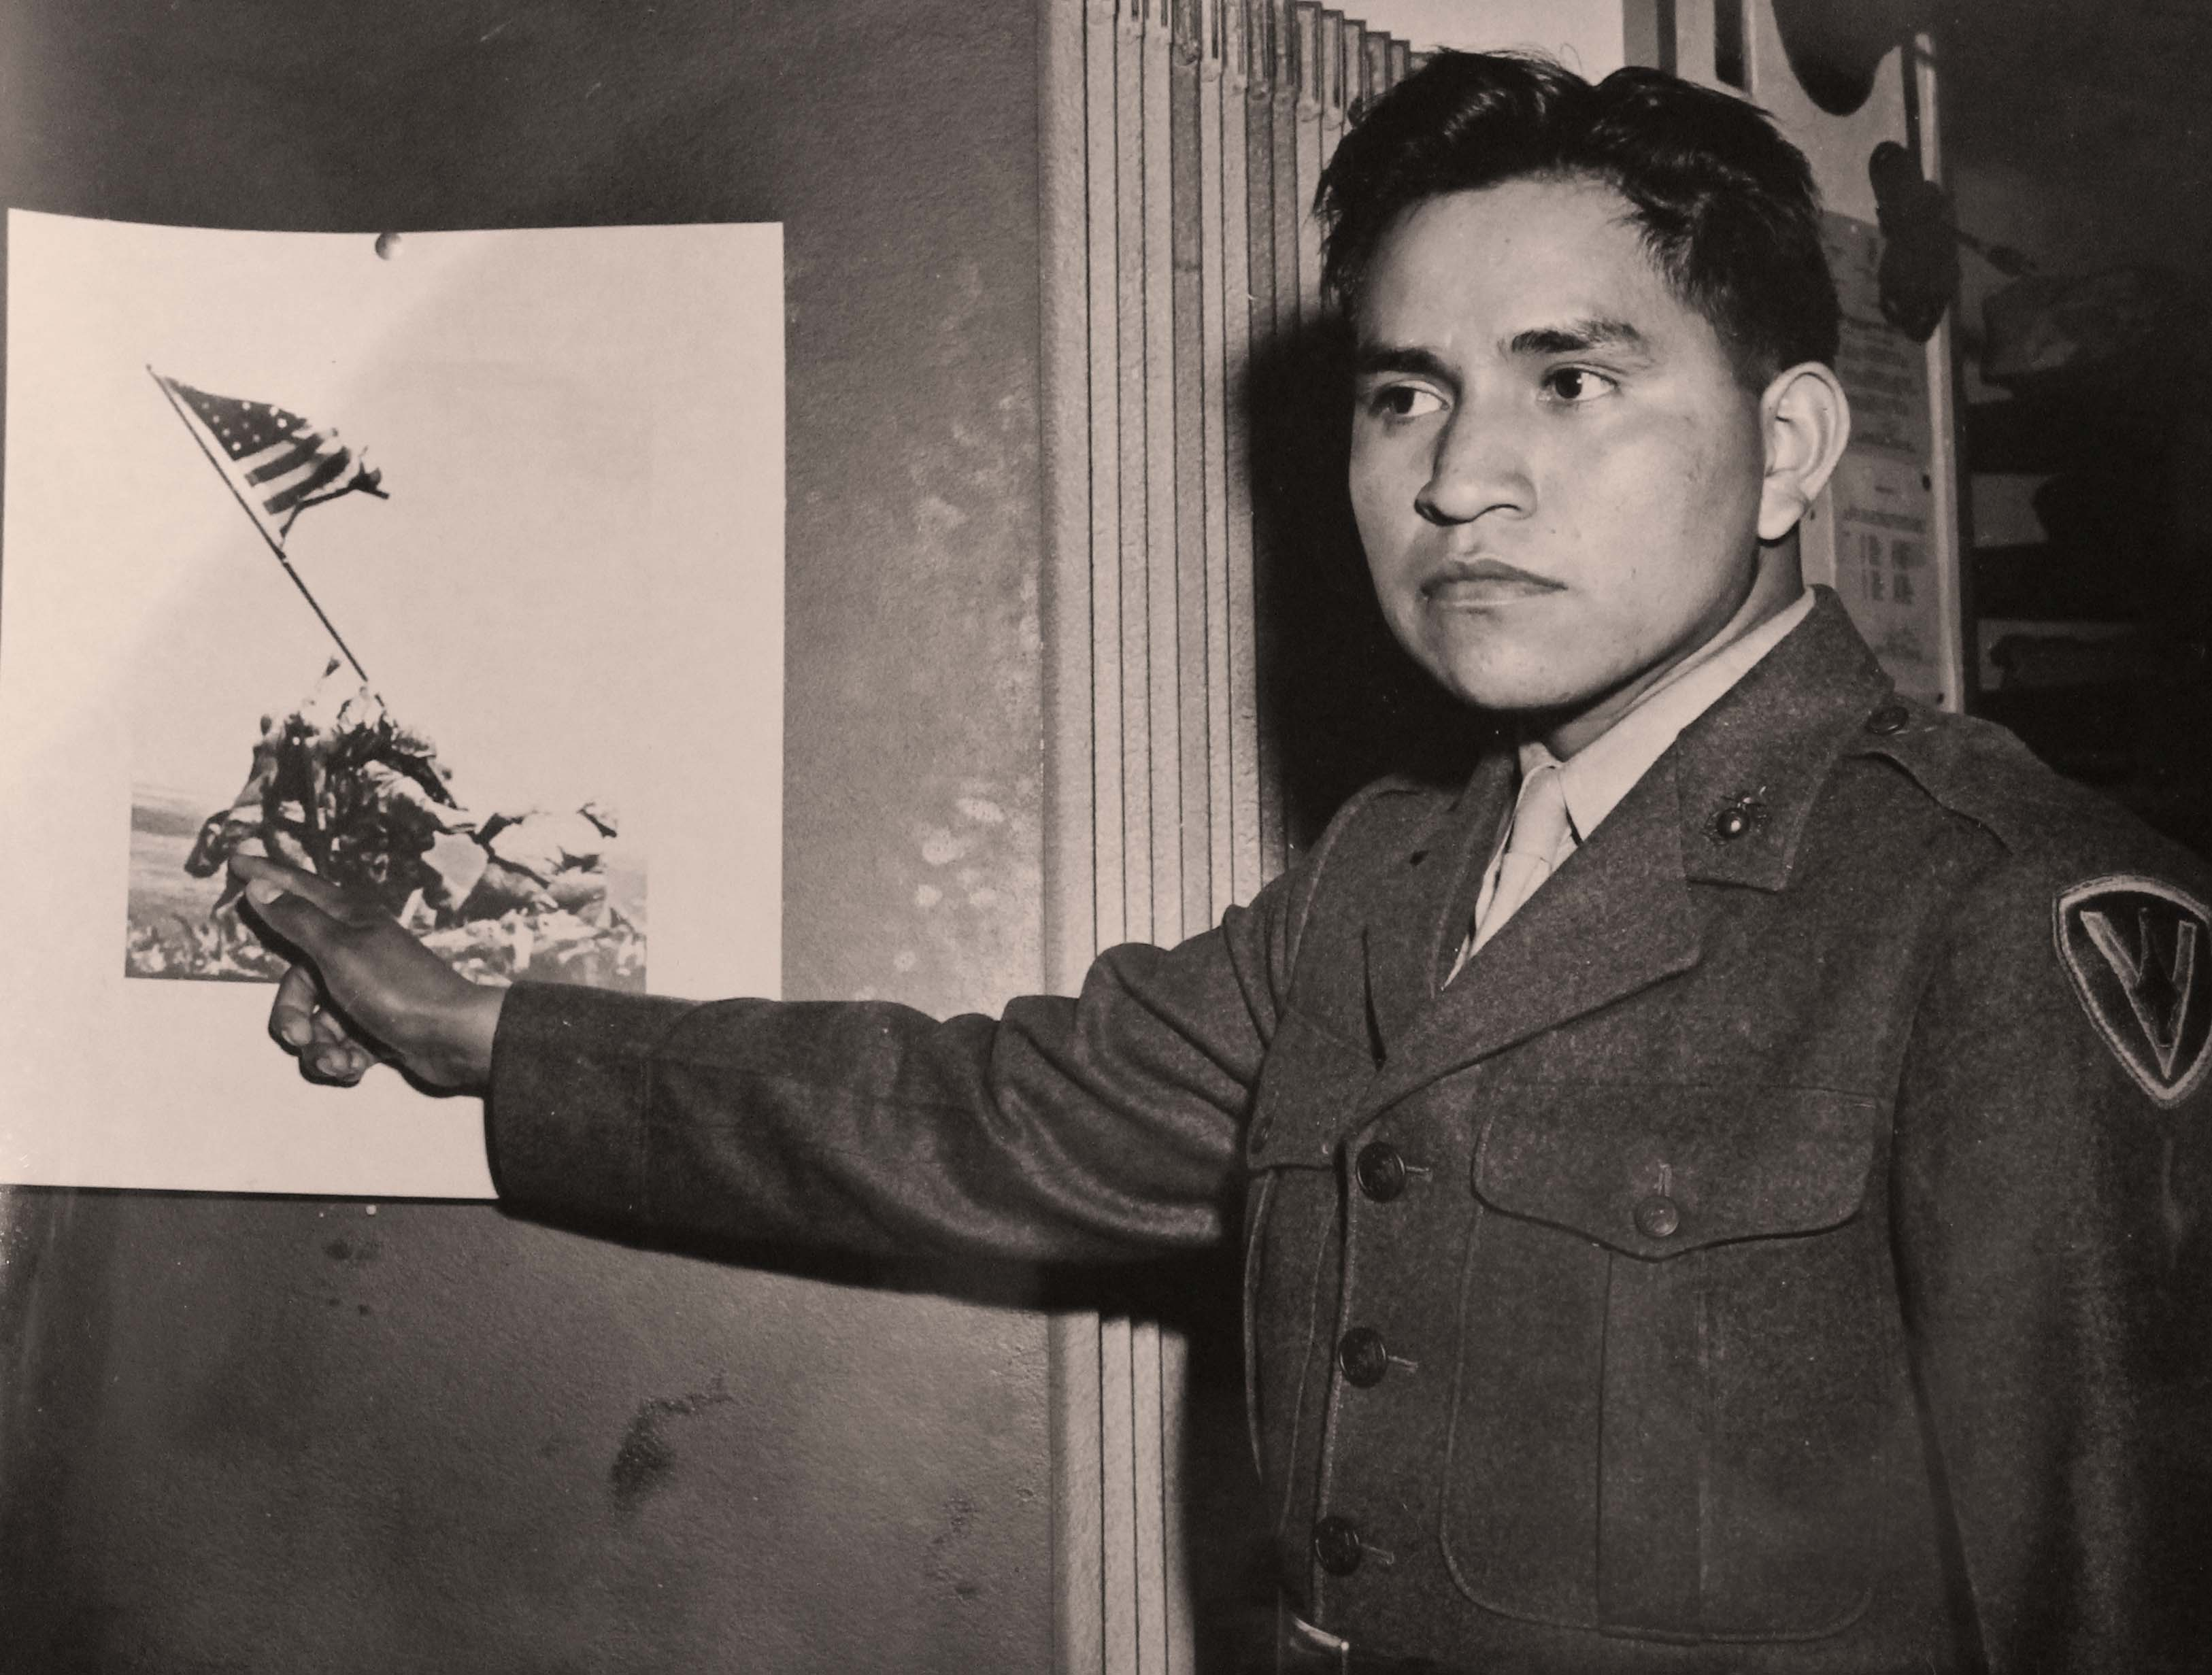 Ira Hayes and the Iwo Jima picture.